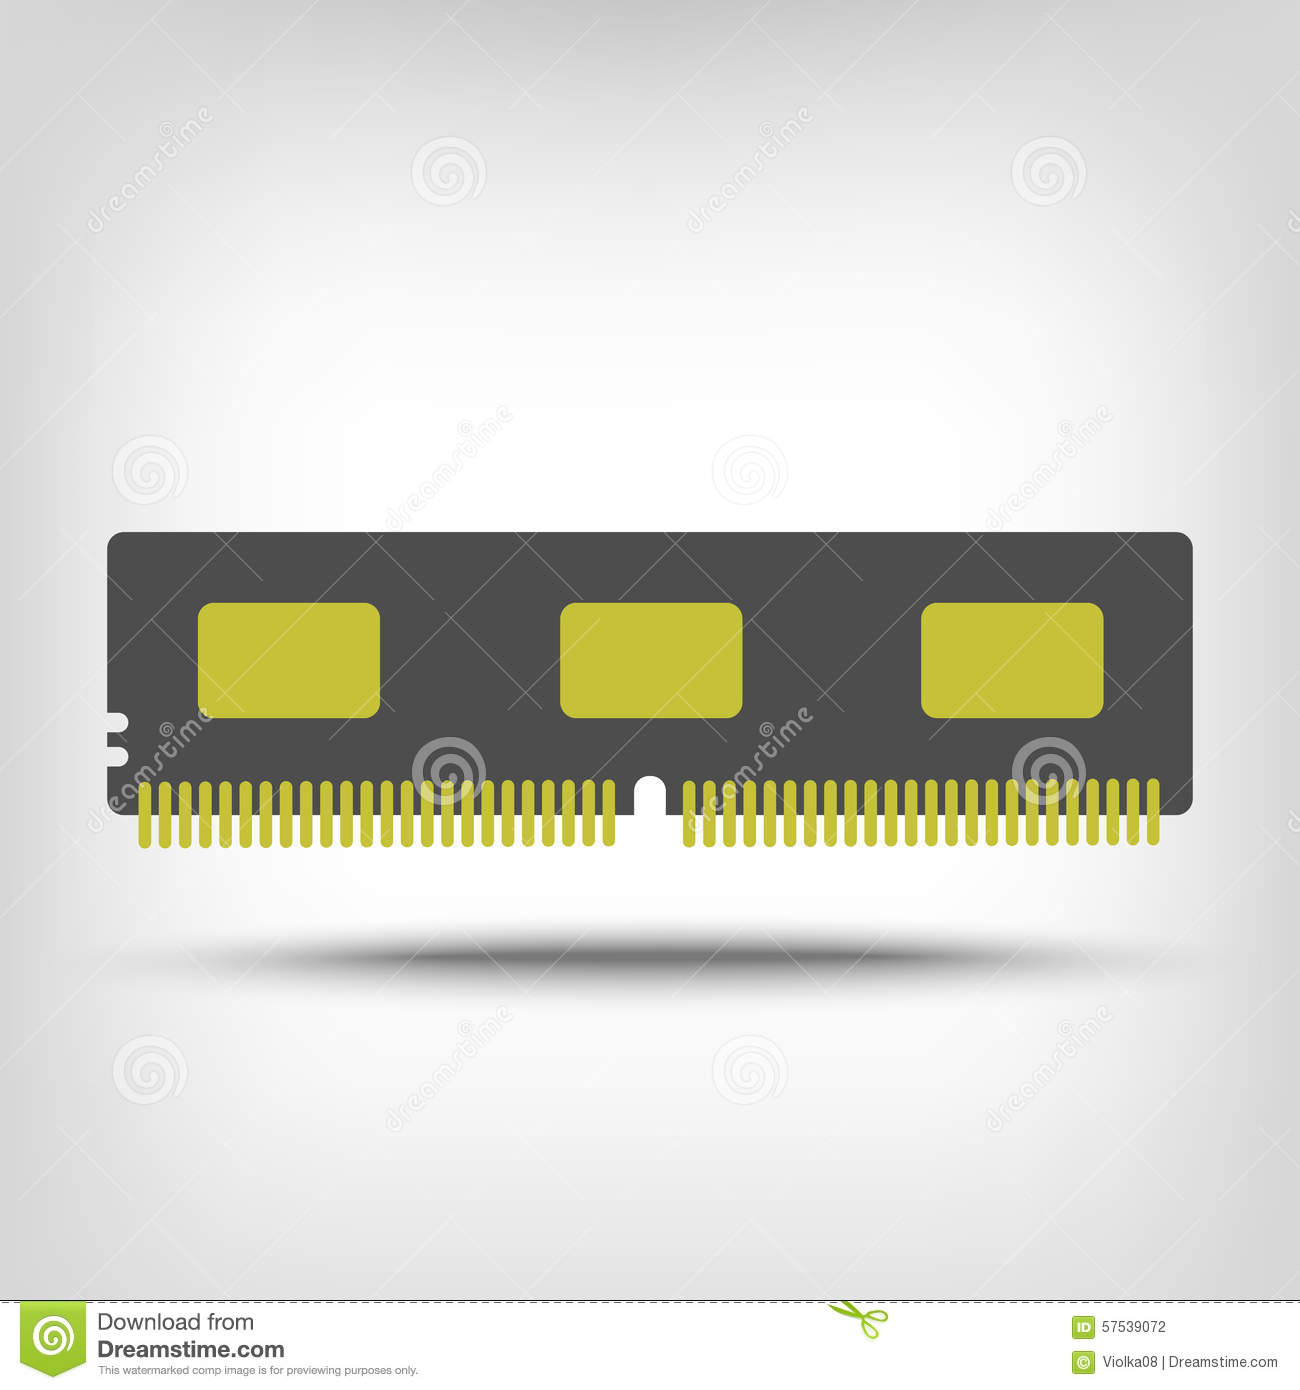 Computer Memory Stock Illustration - Image: 57539072